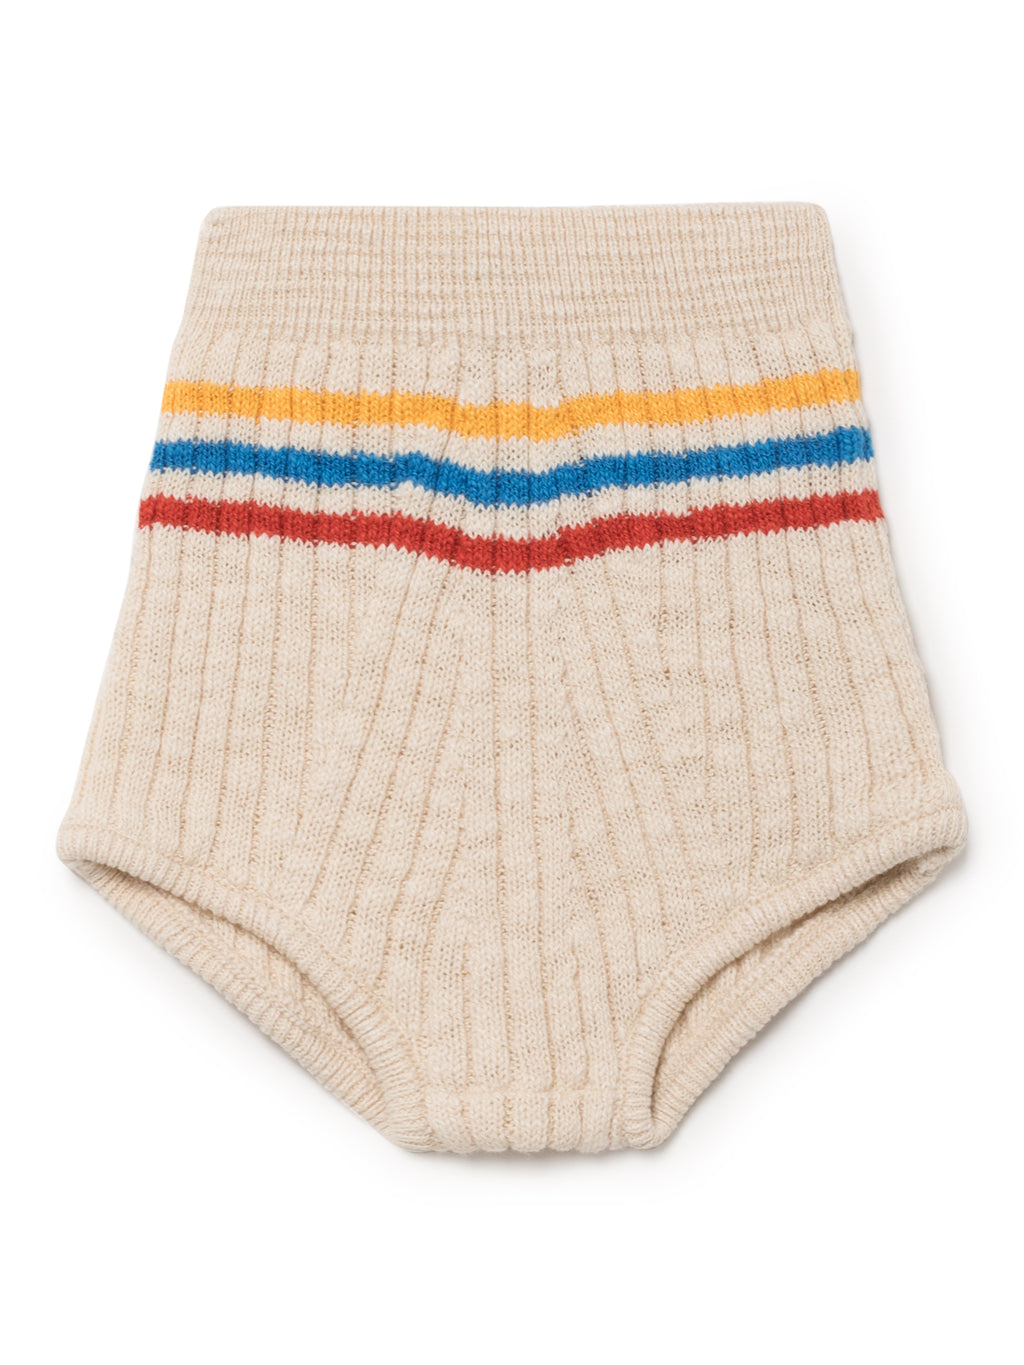 Bobo Choses White Knitted Bloomer shorts